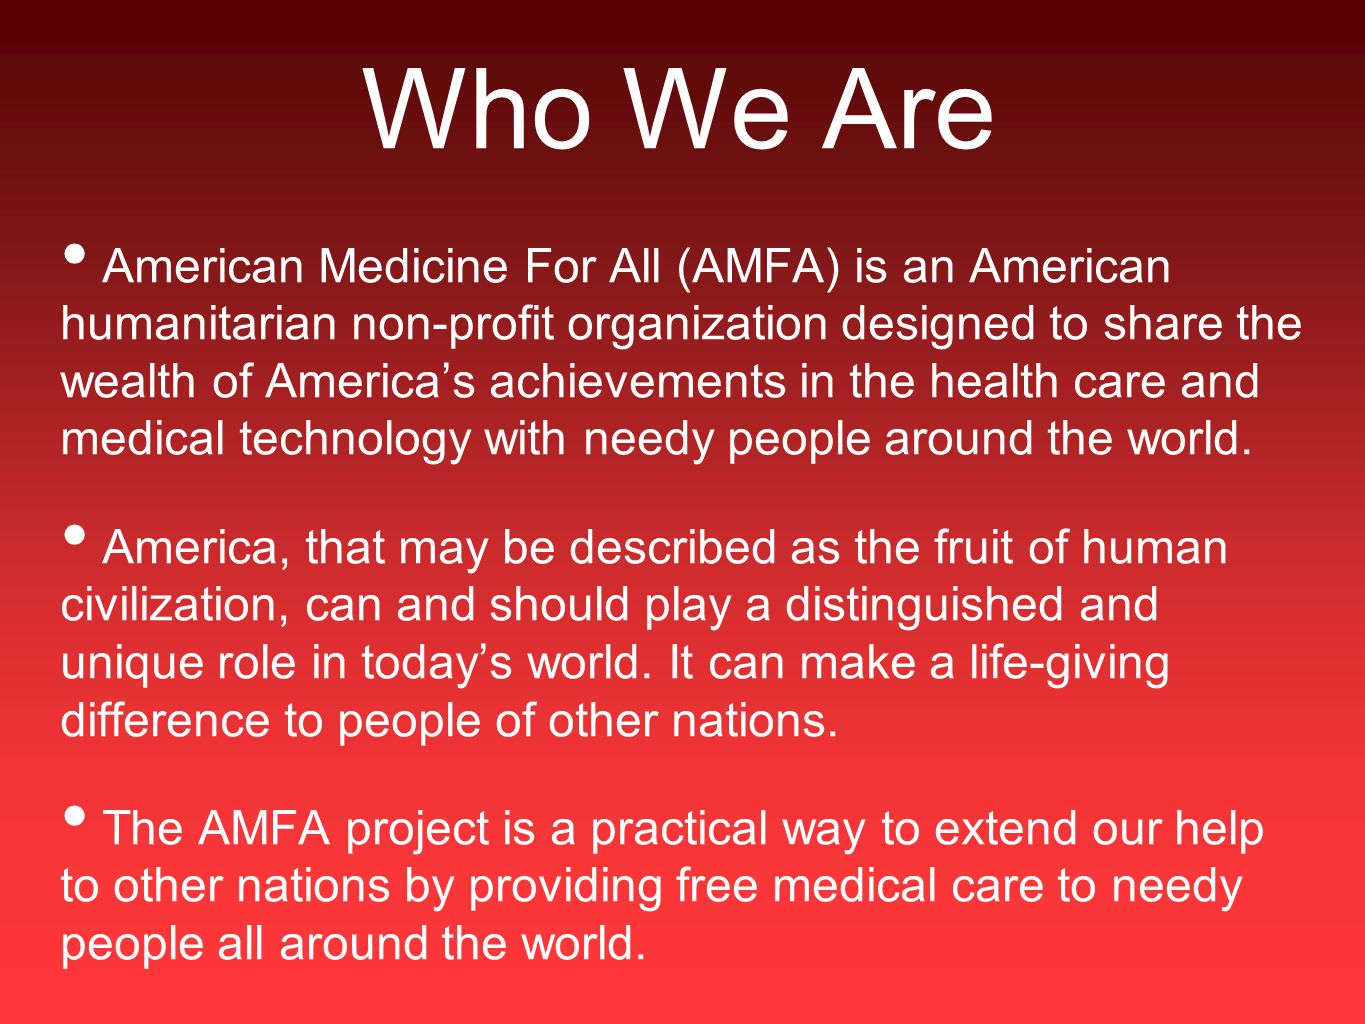 Who We Are American Medicine For All (AMFA) is an American humanitarian non-profit organization designed to share the wealth of America's achievements